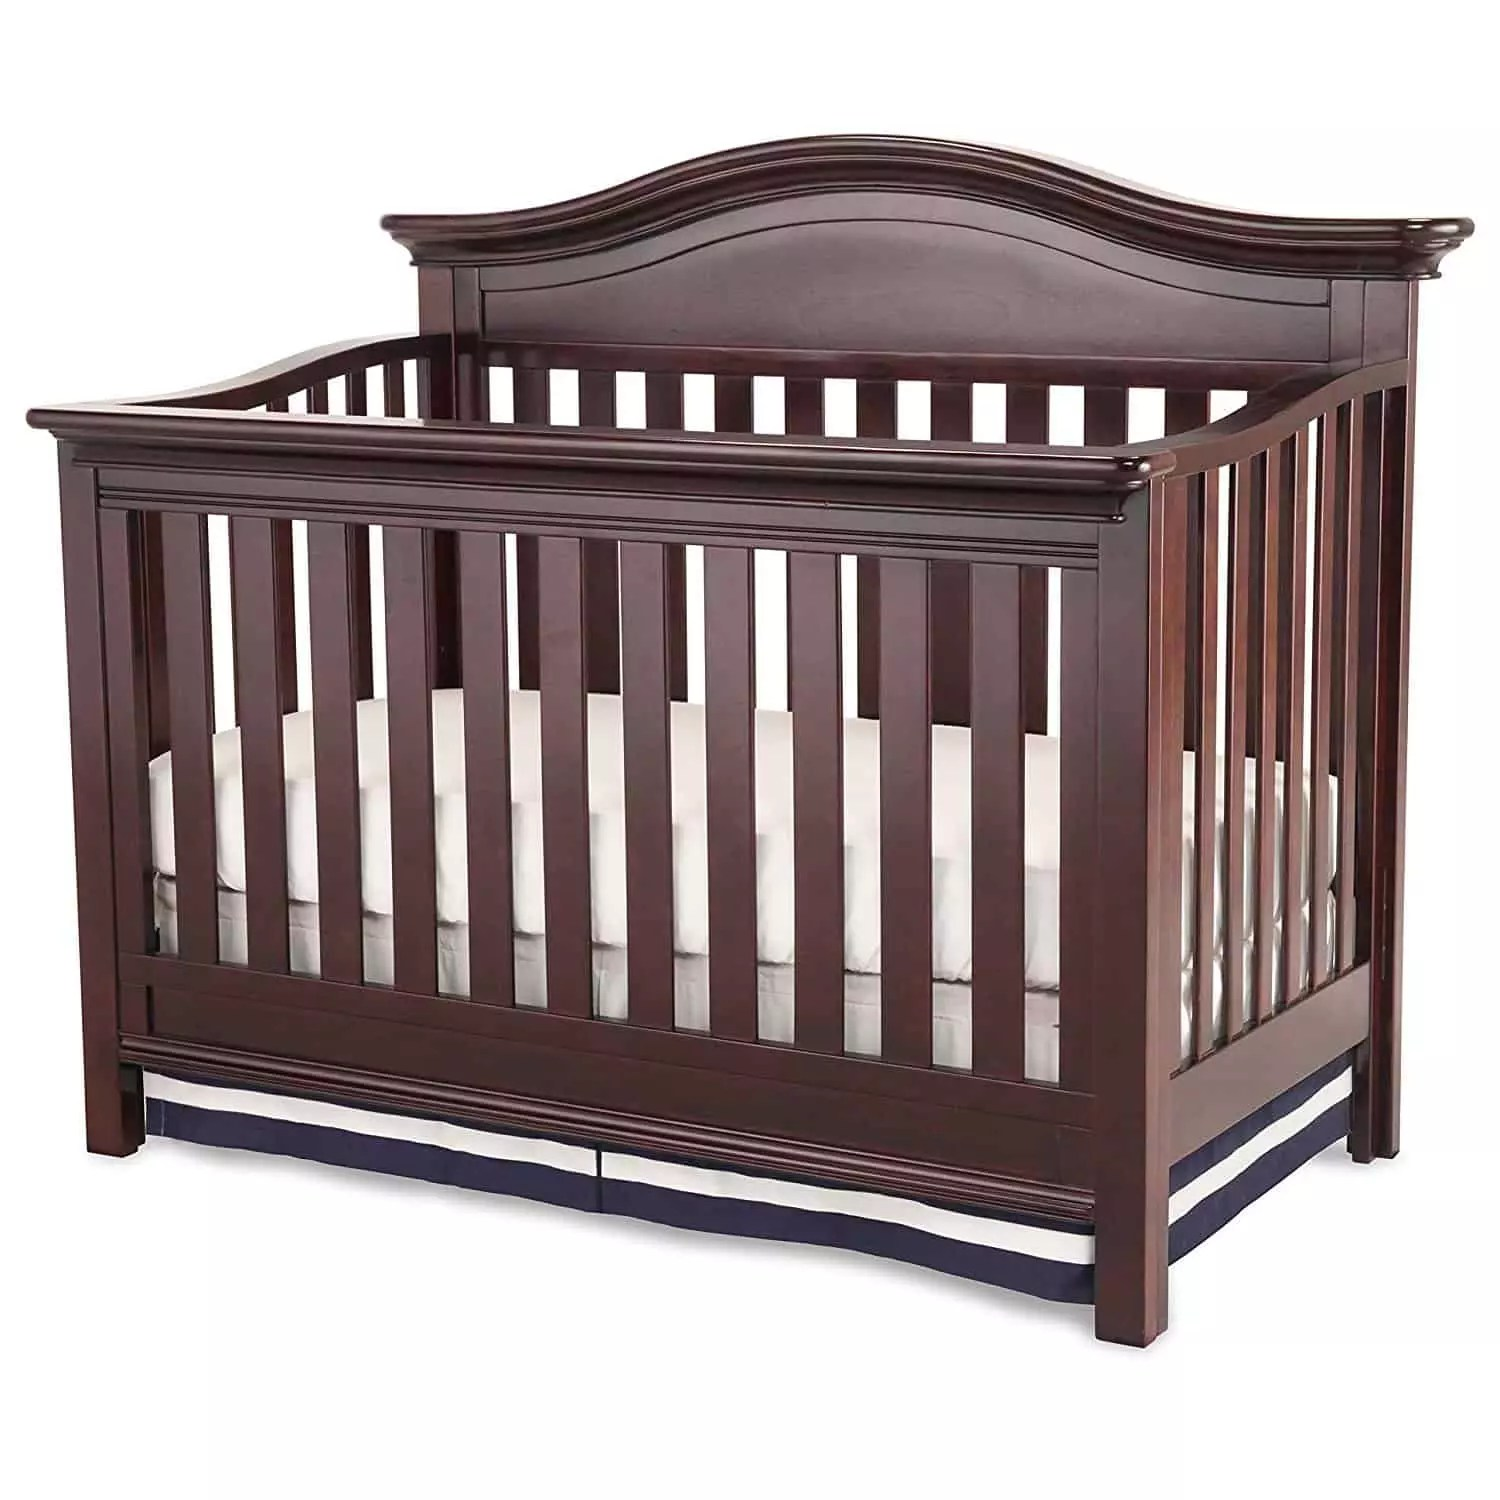 Crib Brand Review Simmons Baby Bargains